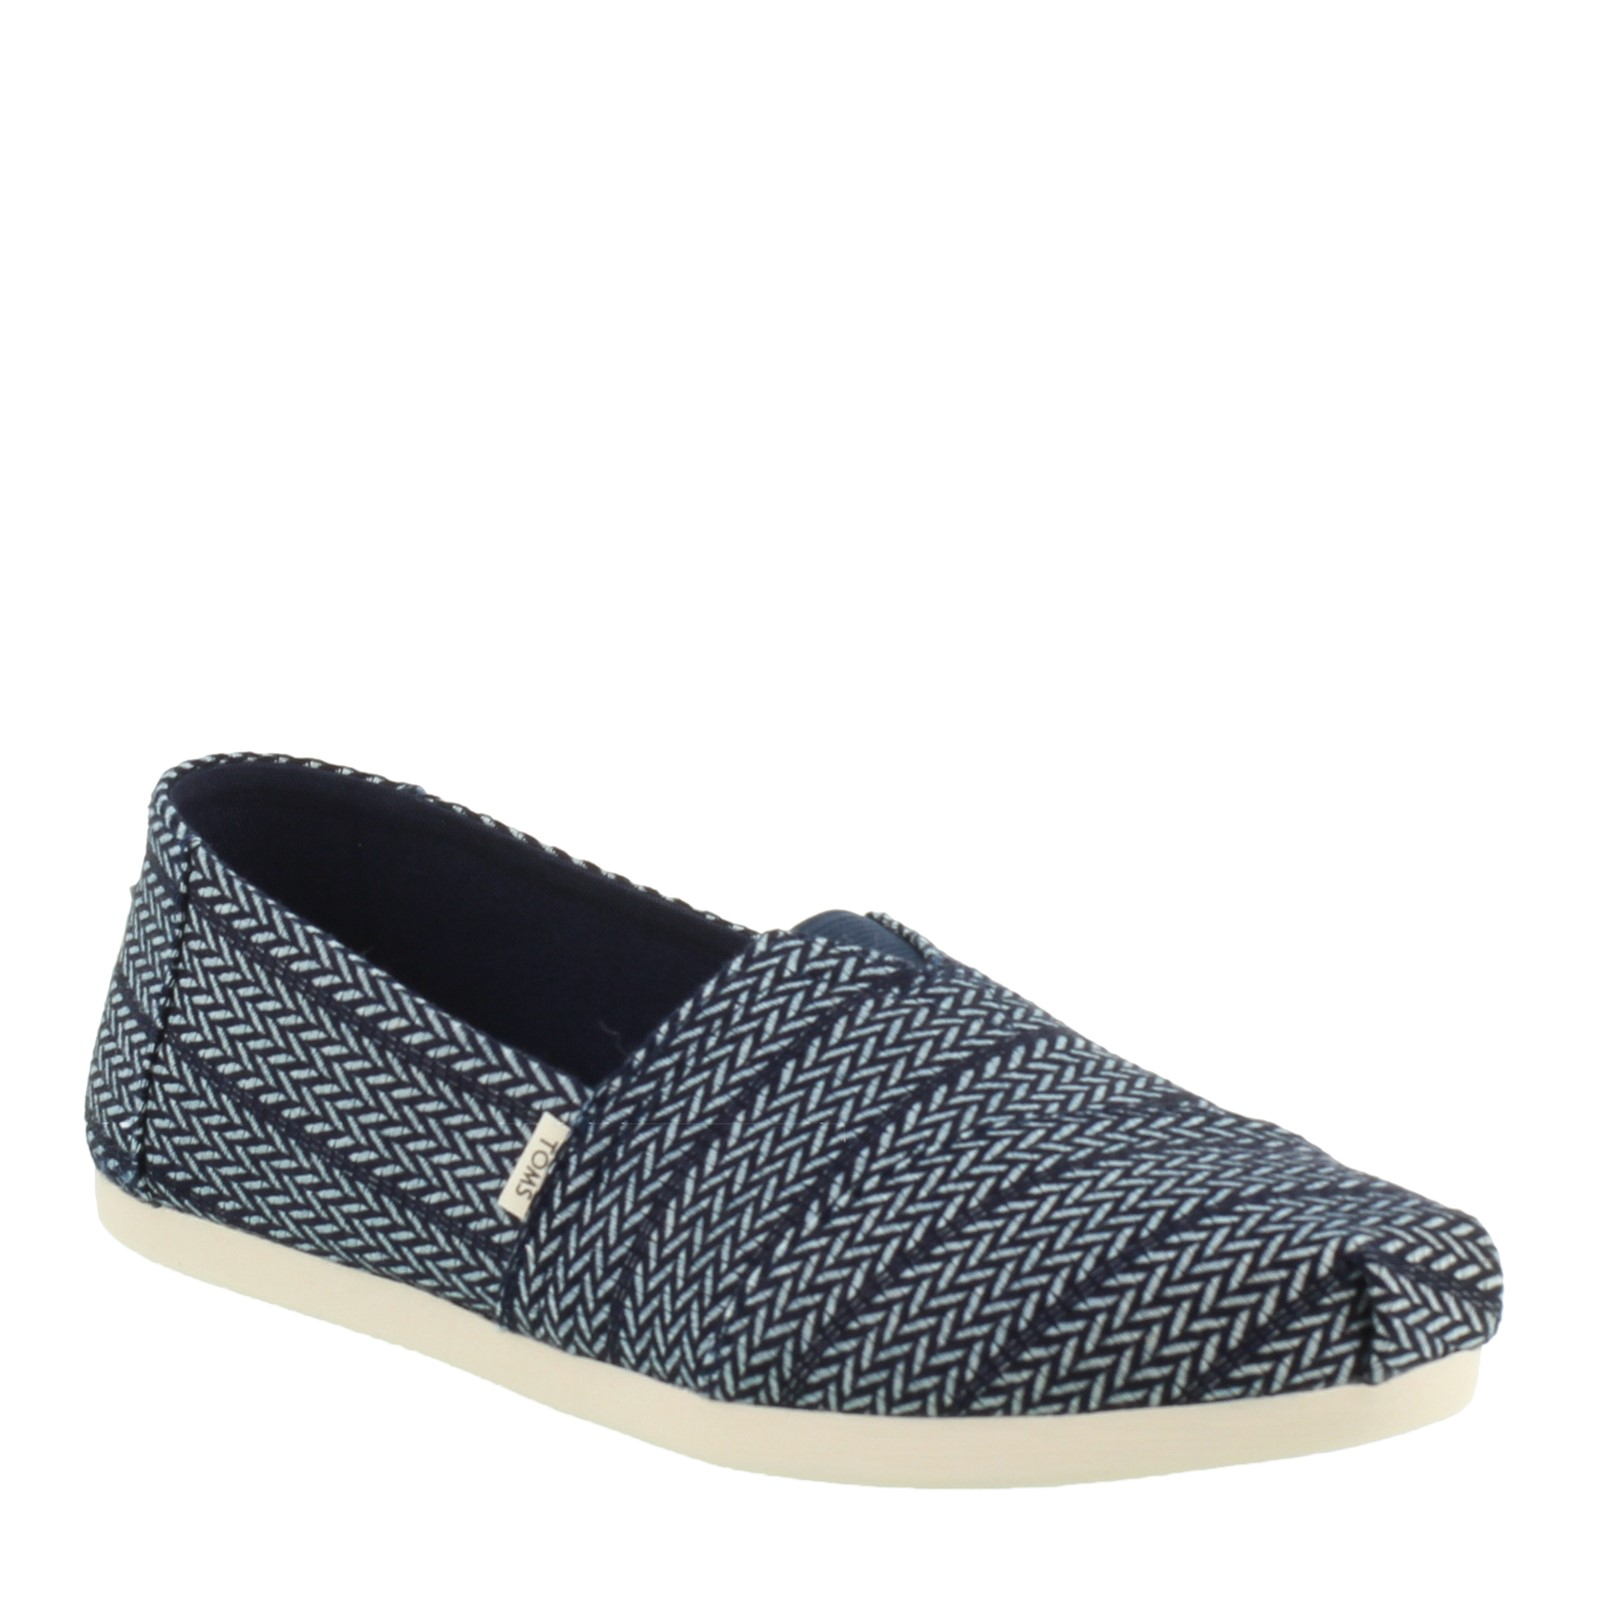 0a39c25391 Home; Women's Toms, Classics Slip on Shoes. Previous. default view ...